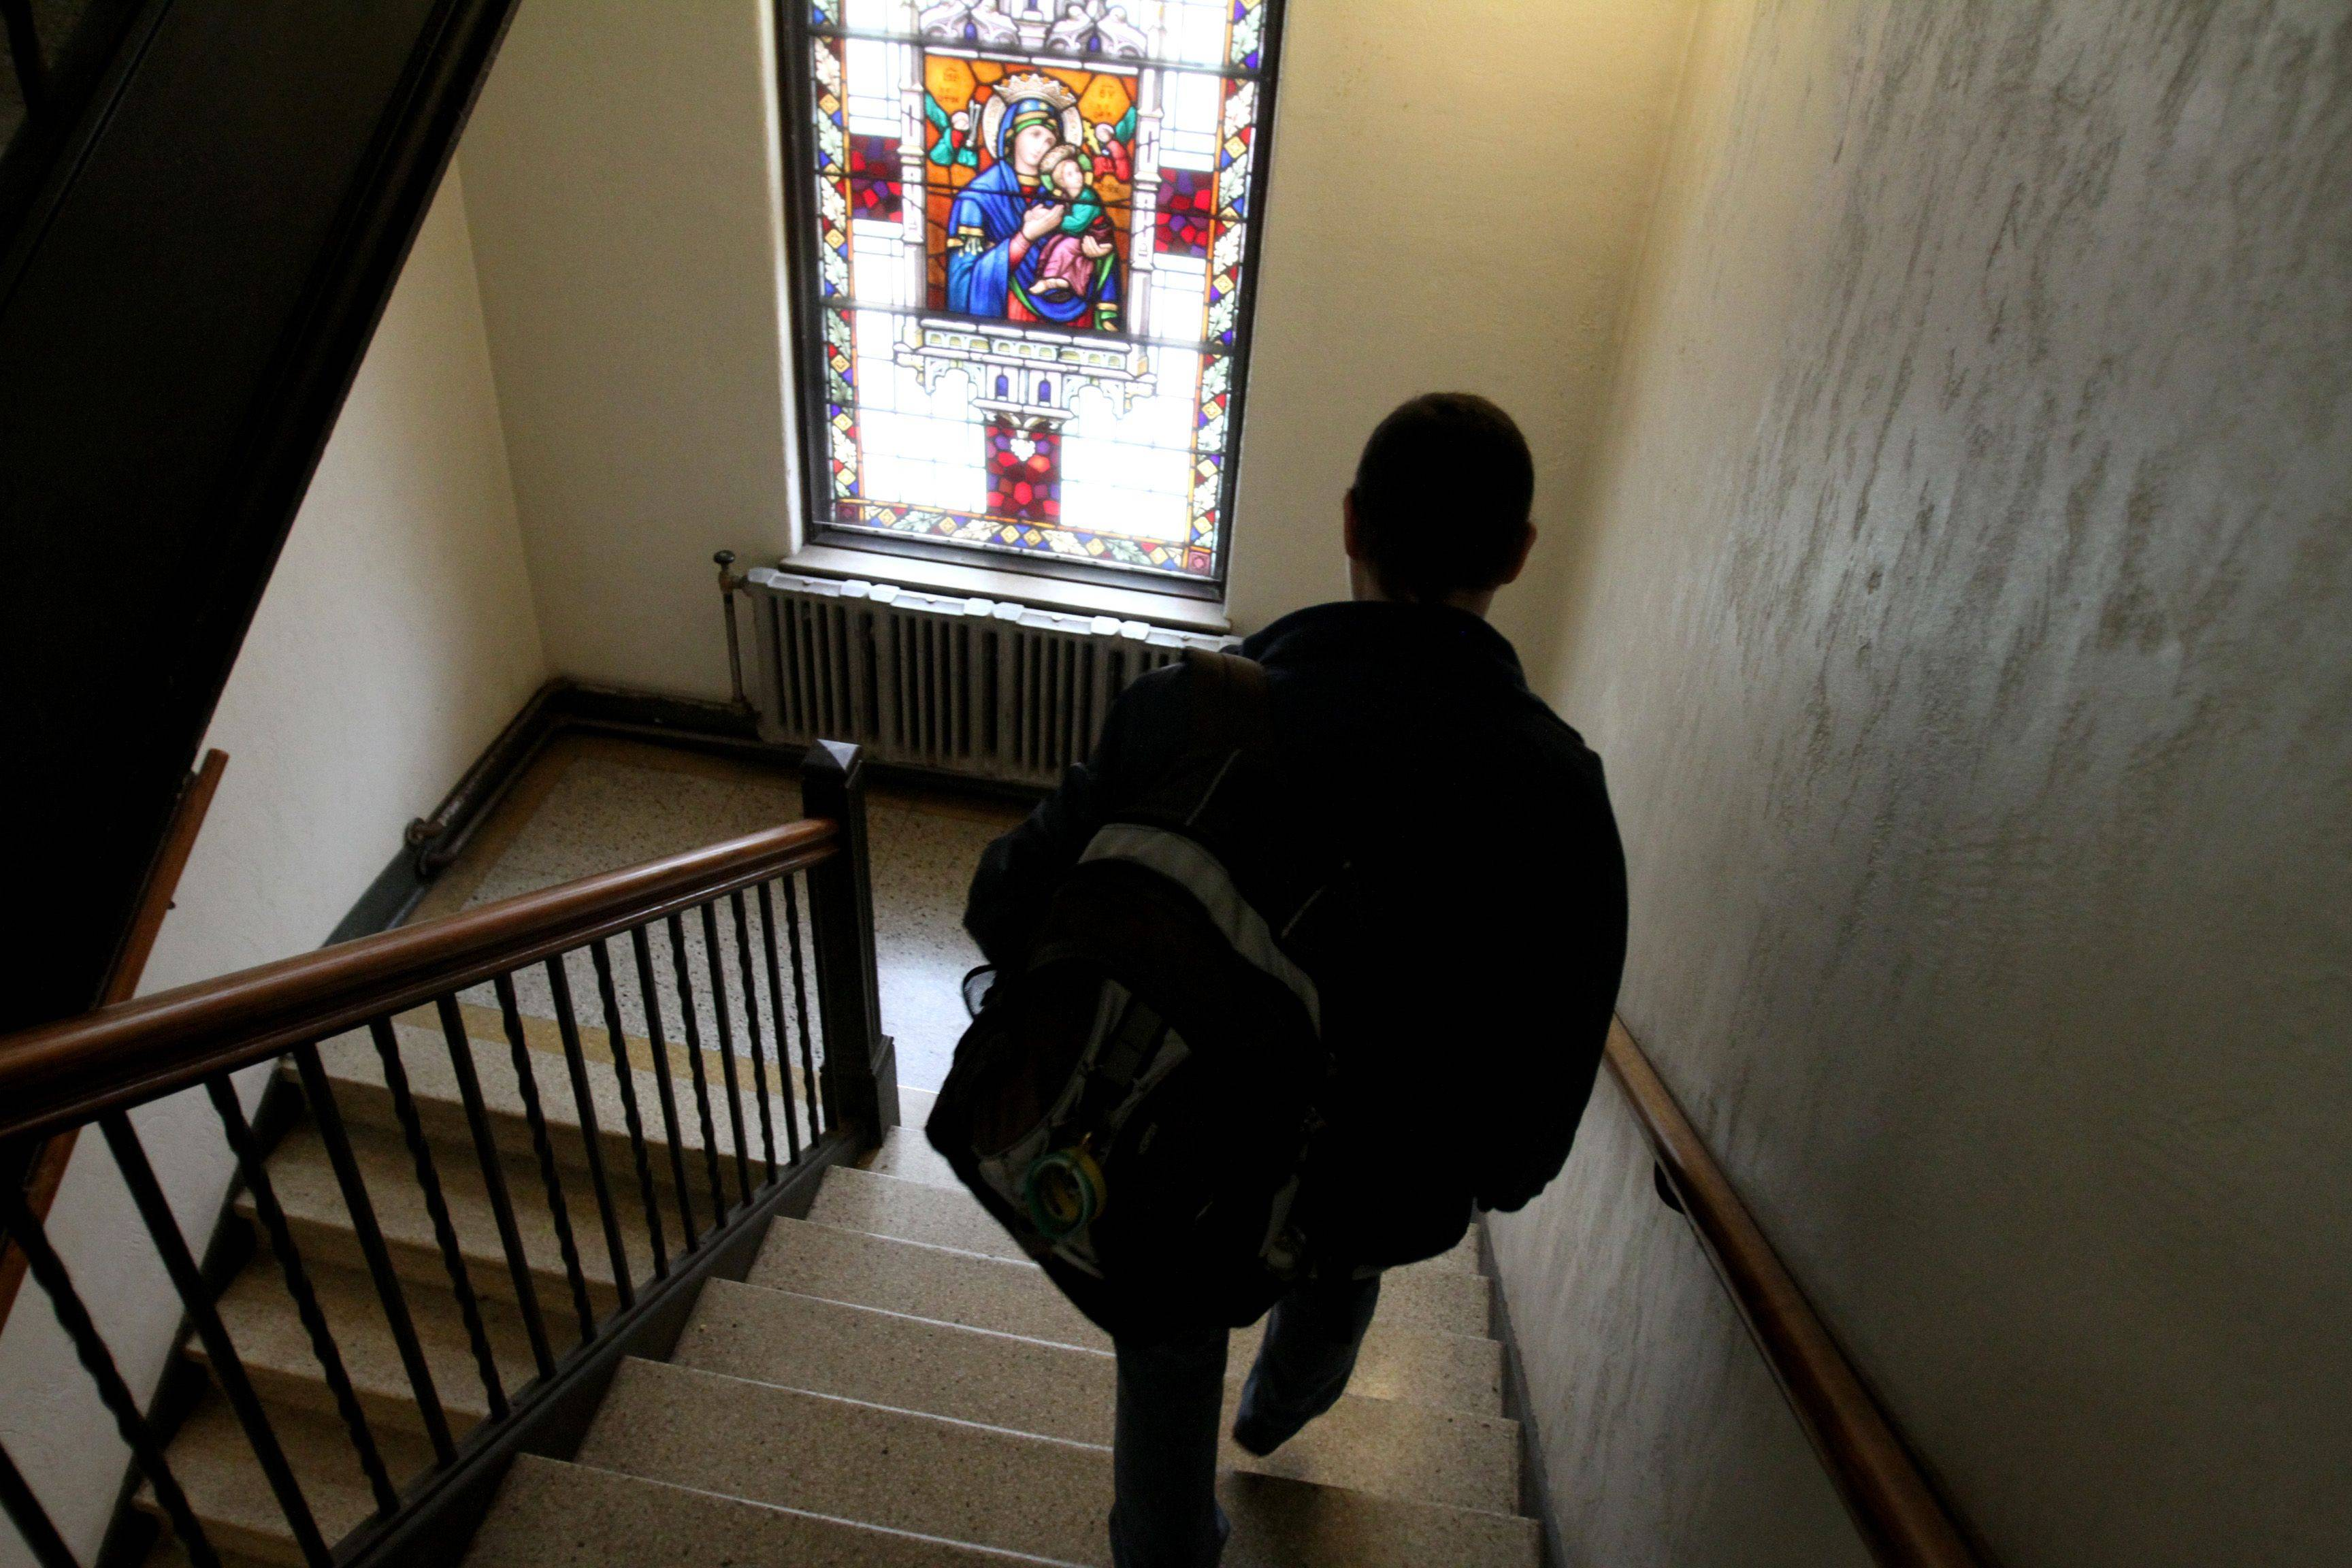 AnnMarie Walsh walks down the stairs from her second floor room at Deborah's Place in Chicago. The residence was formerly a convent.